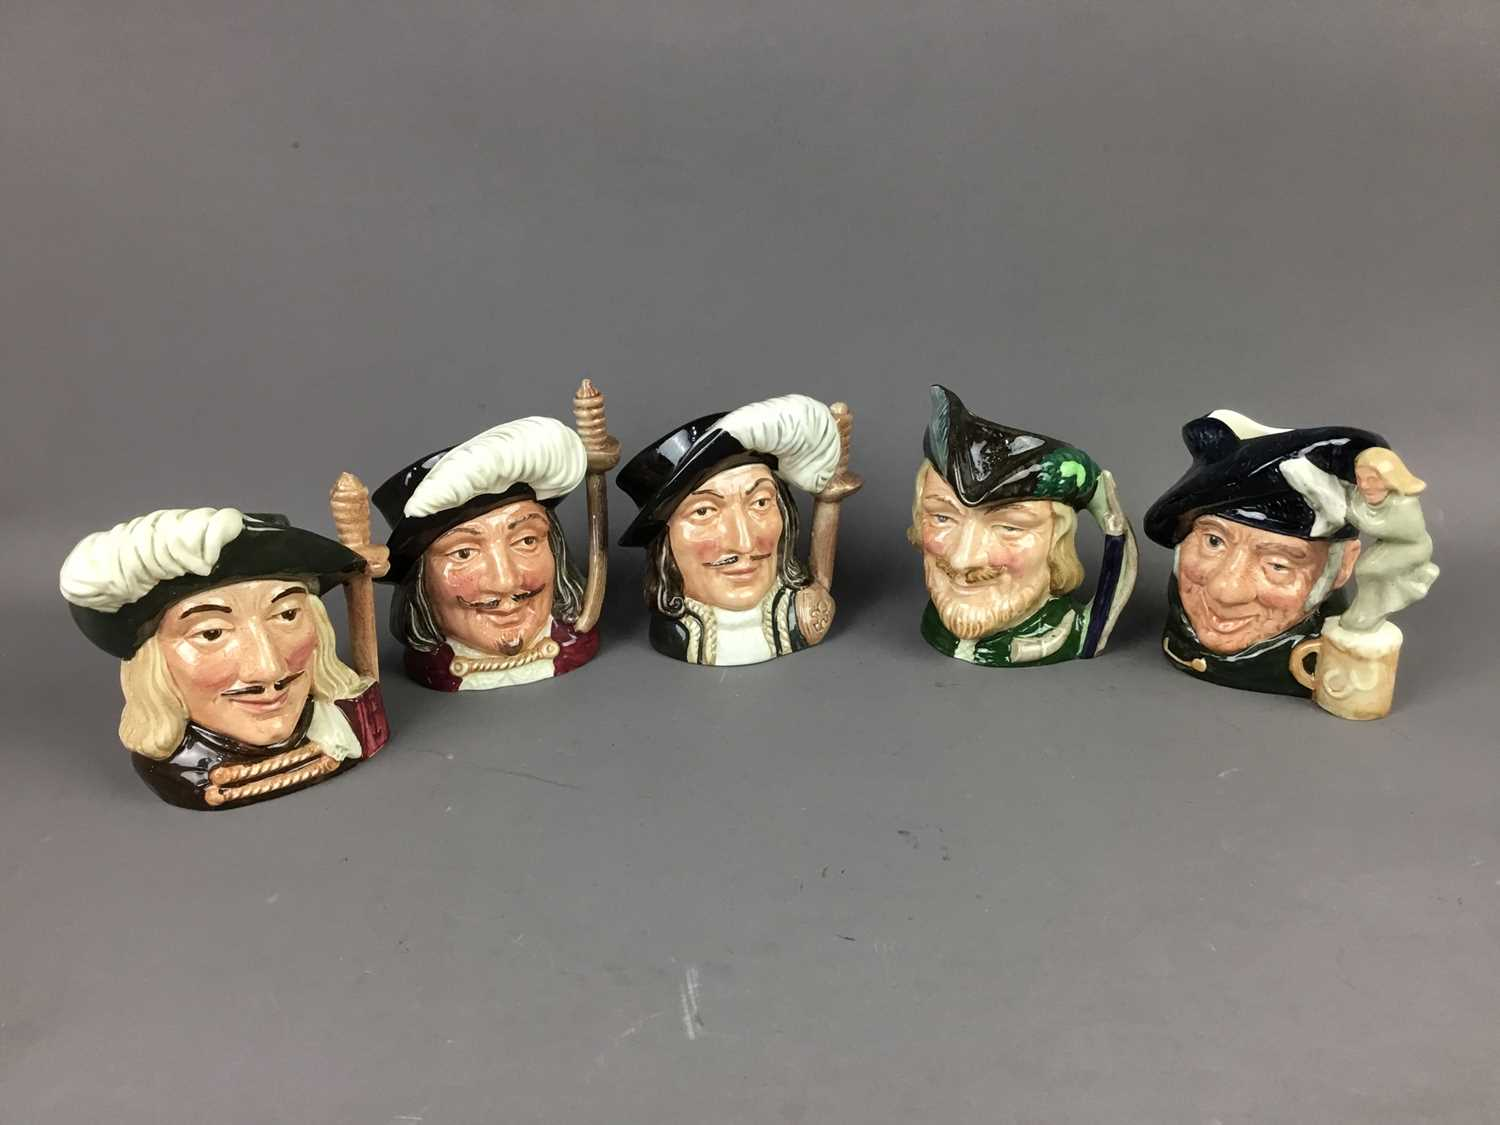 Lot 531 - A COLLECTION OF ROYAL DOULTON CHARACTER JUGS